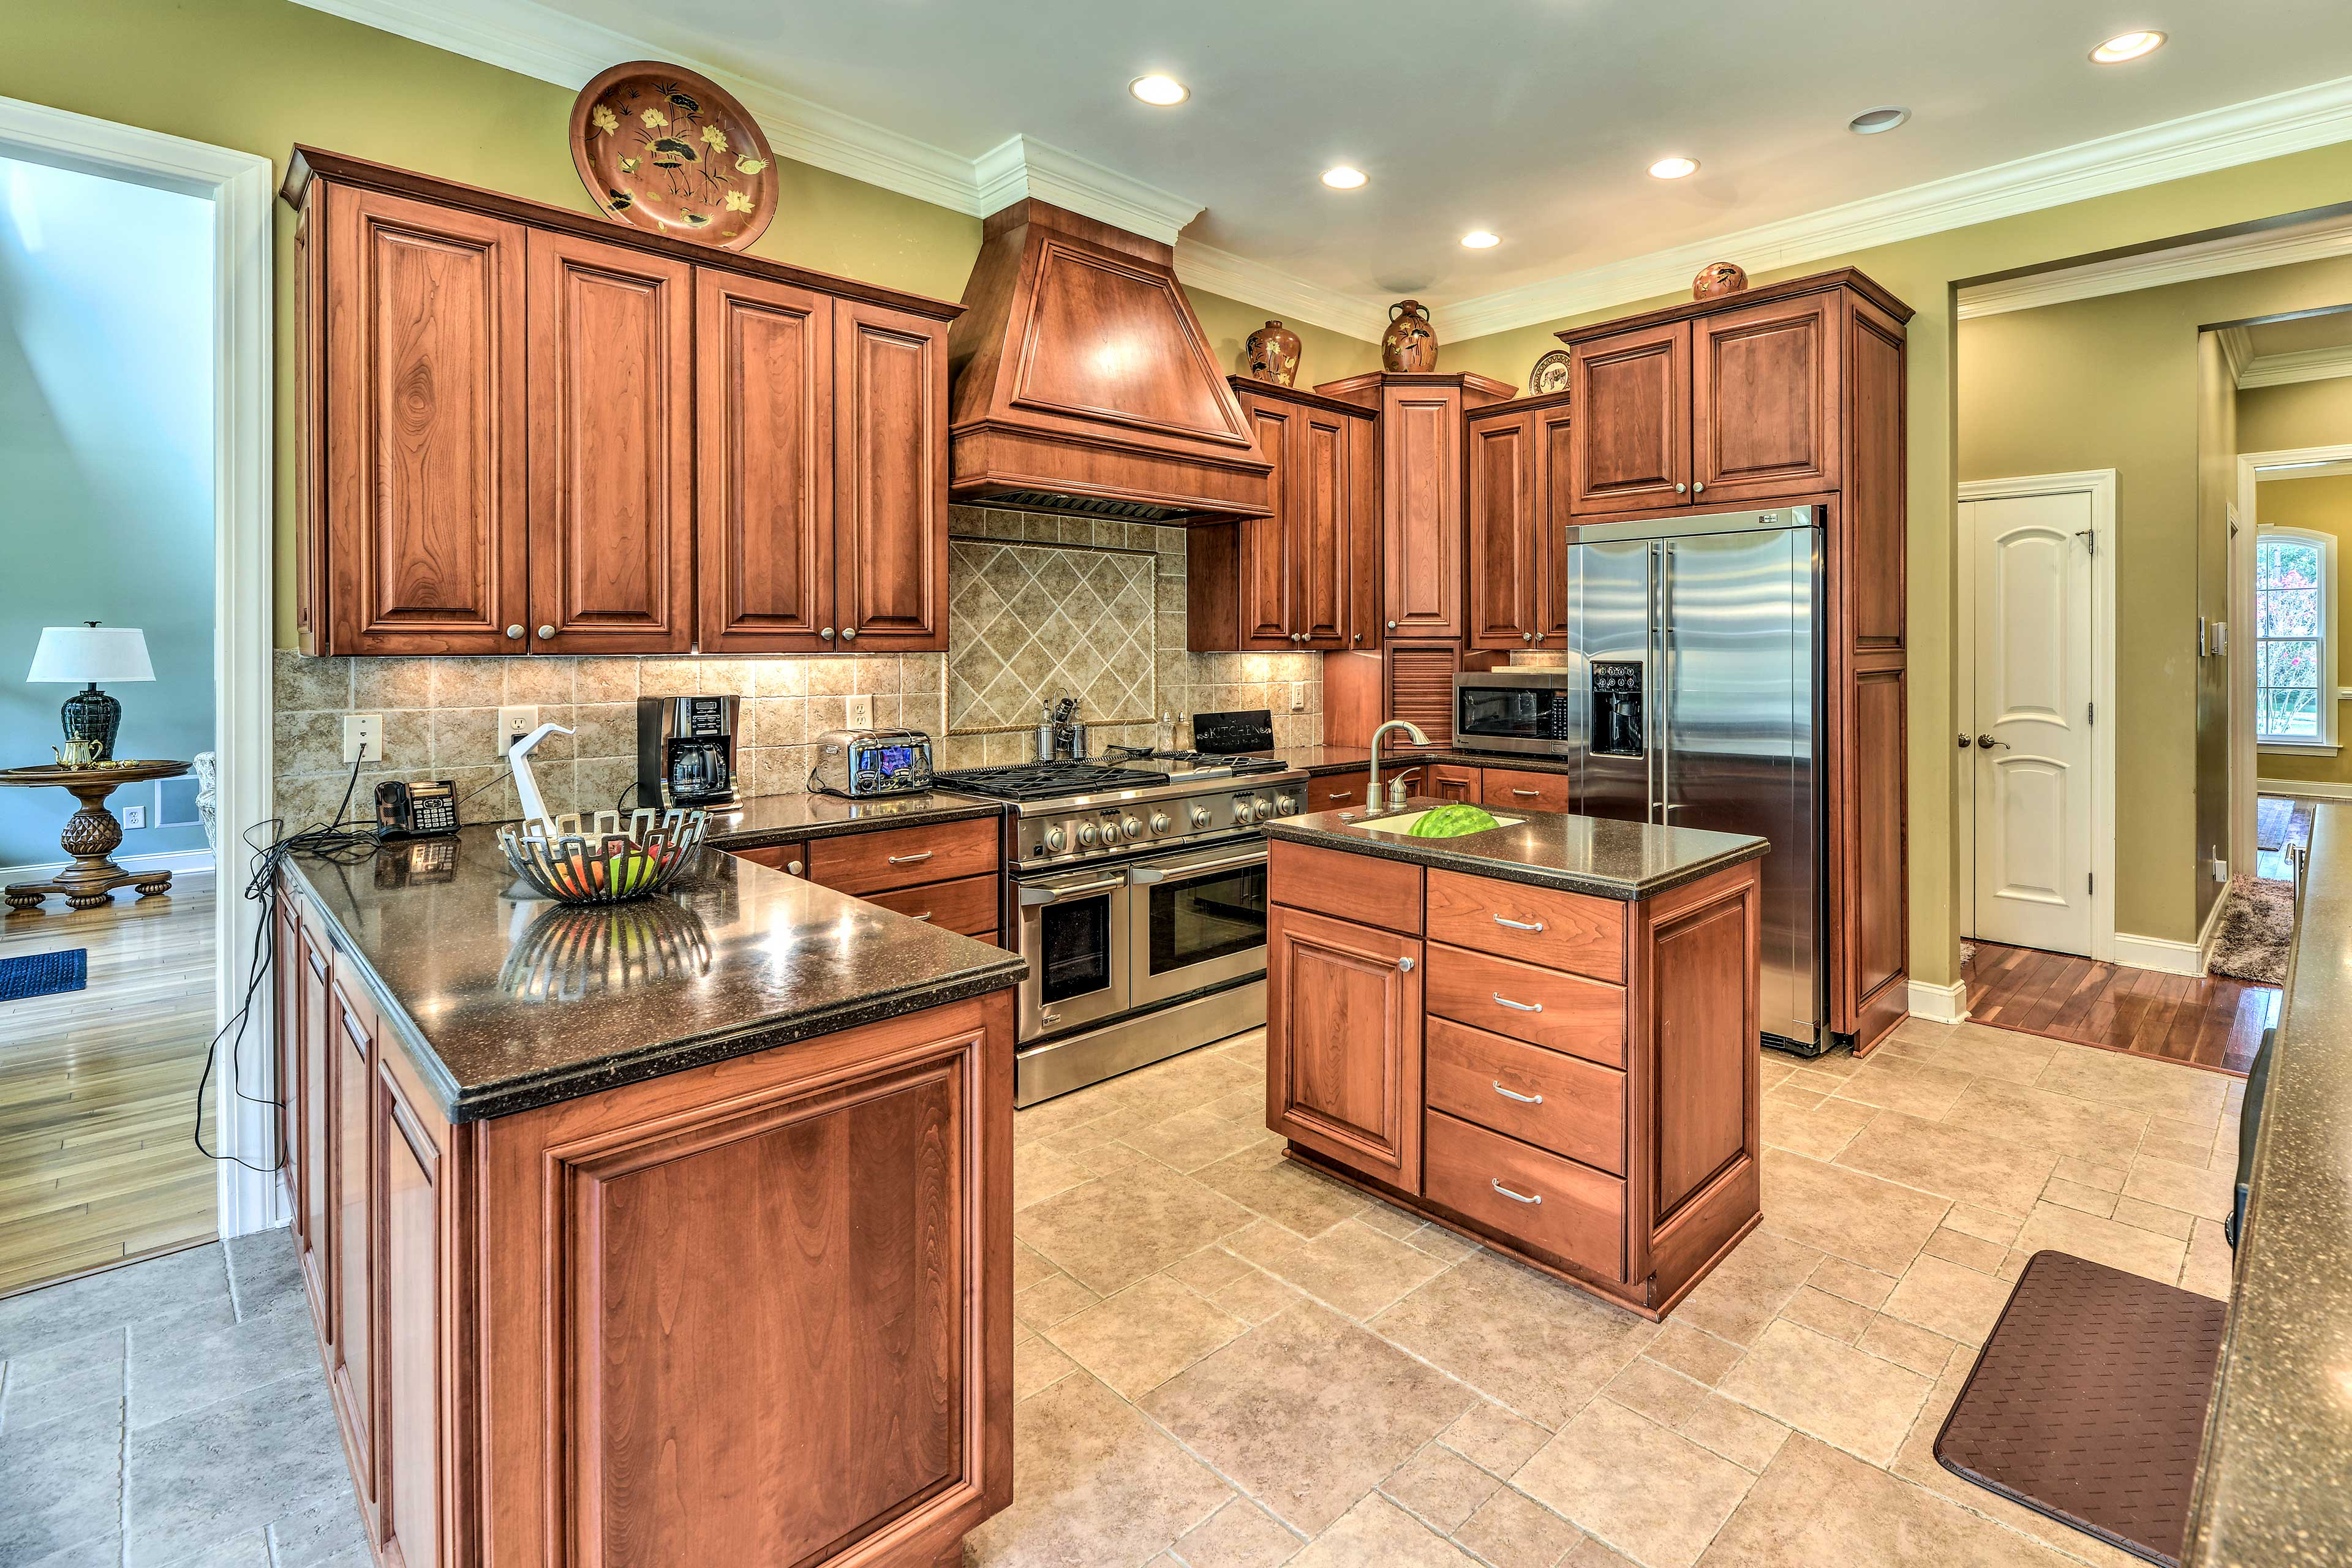 Head into the fully equipped kitchen to prepare delicious meals.